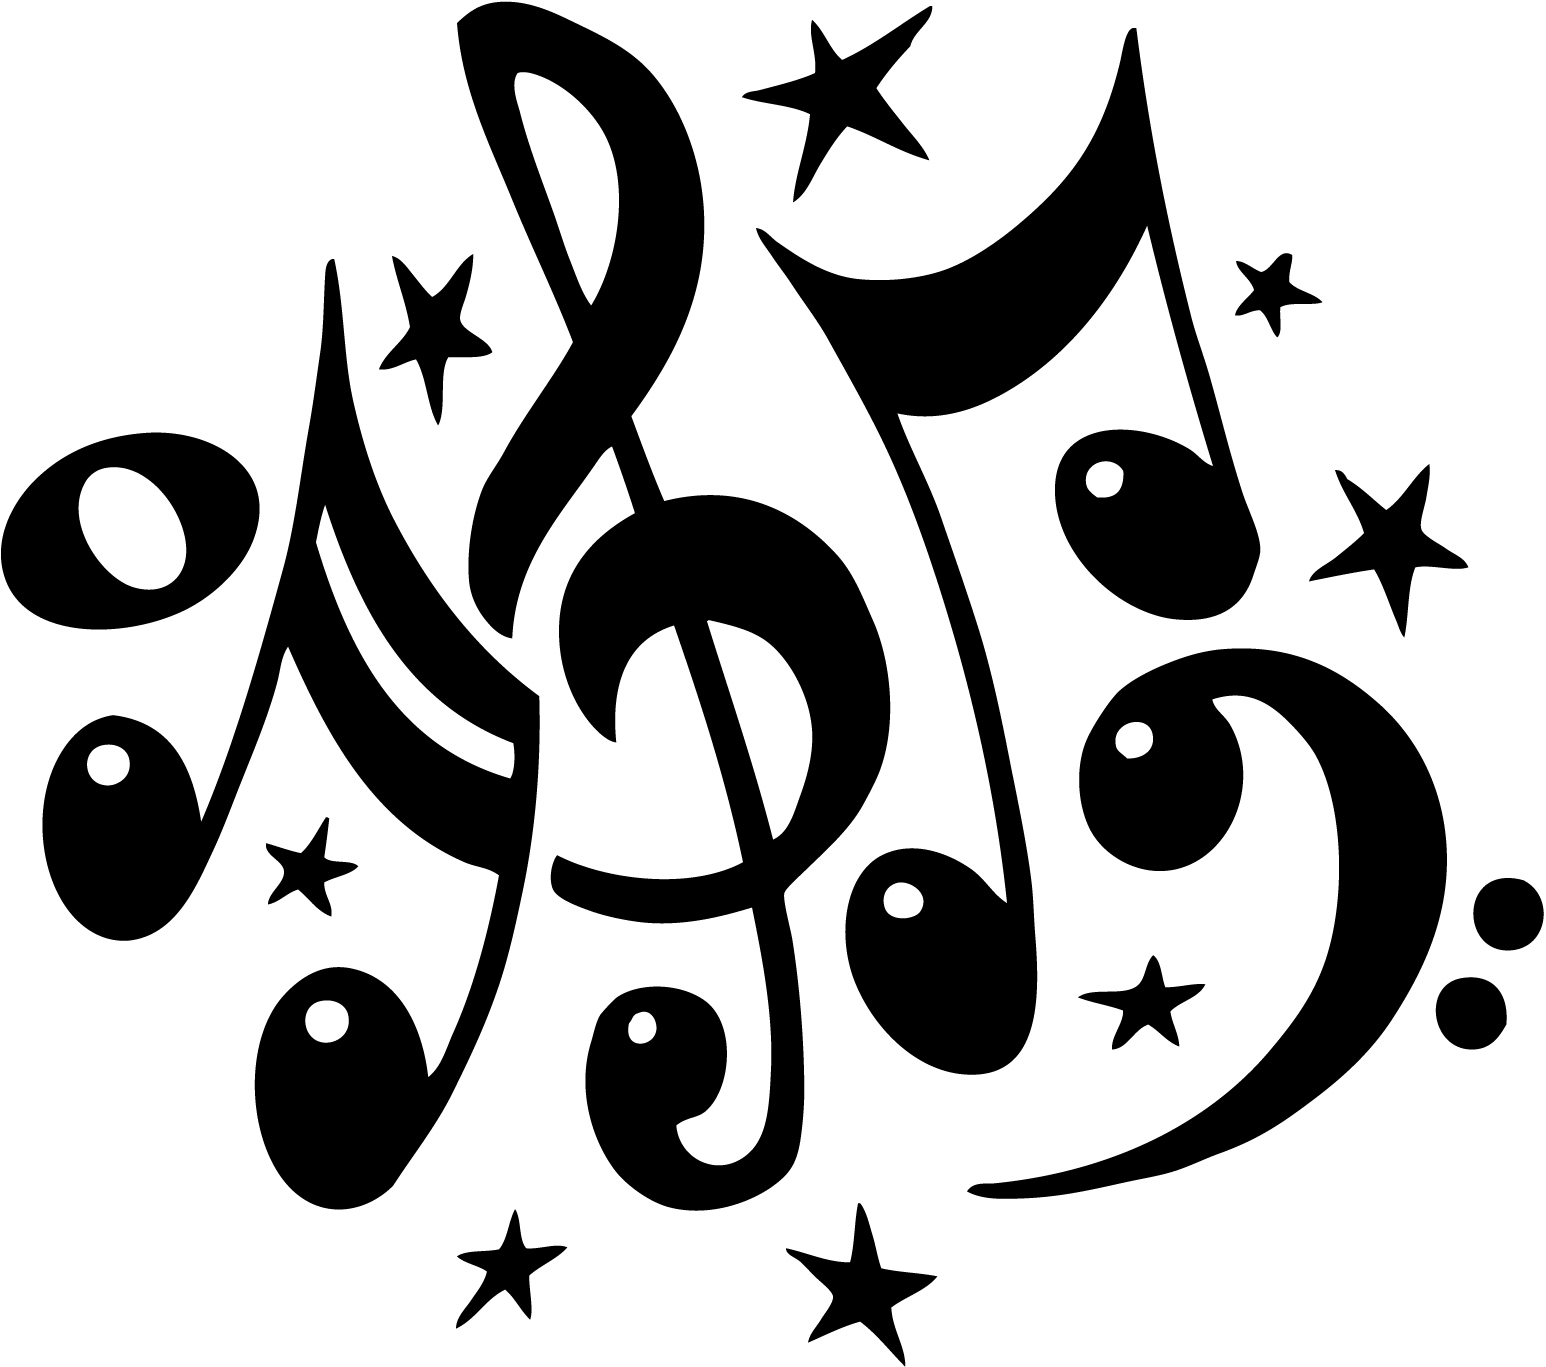 Musical Notes Free Clip Art Music Notes -Musical notes free clip art music notes clipartwiz-4